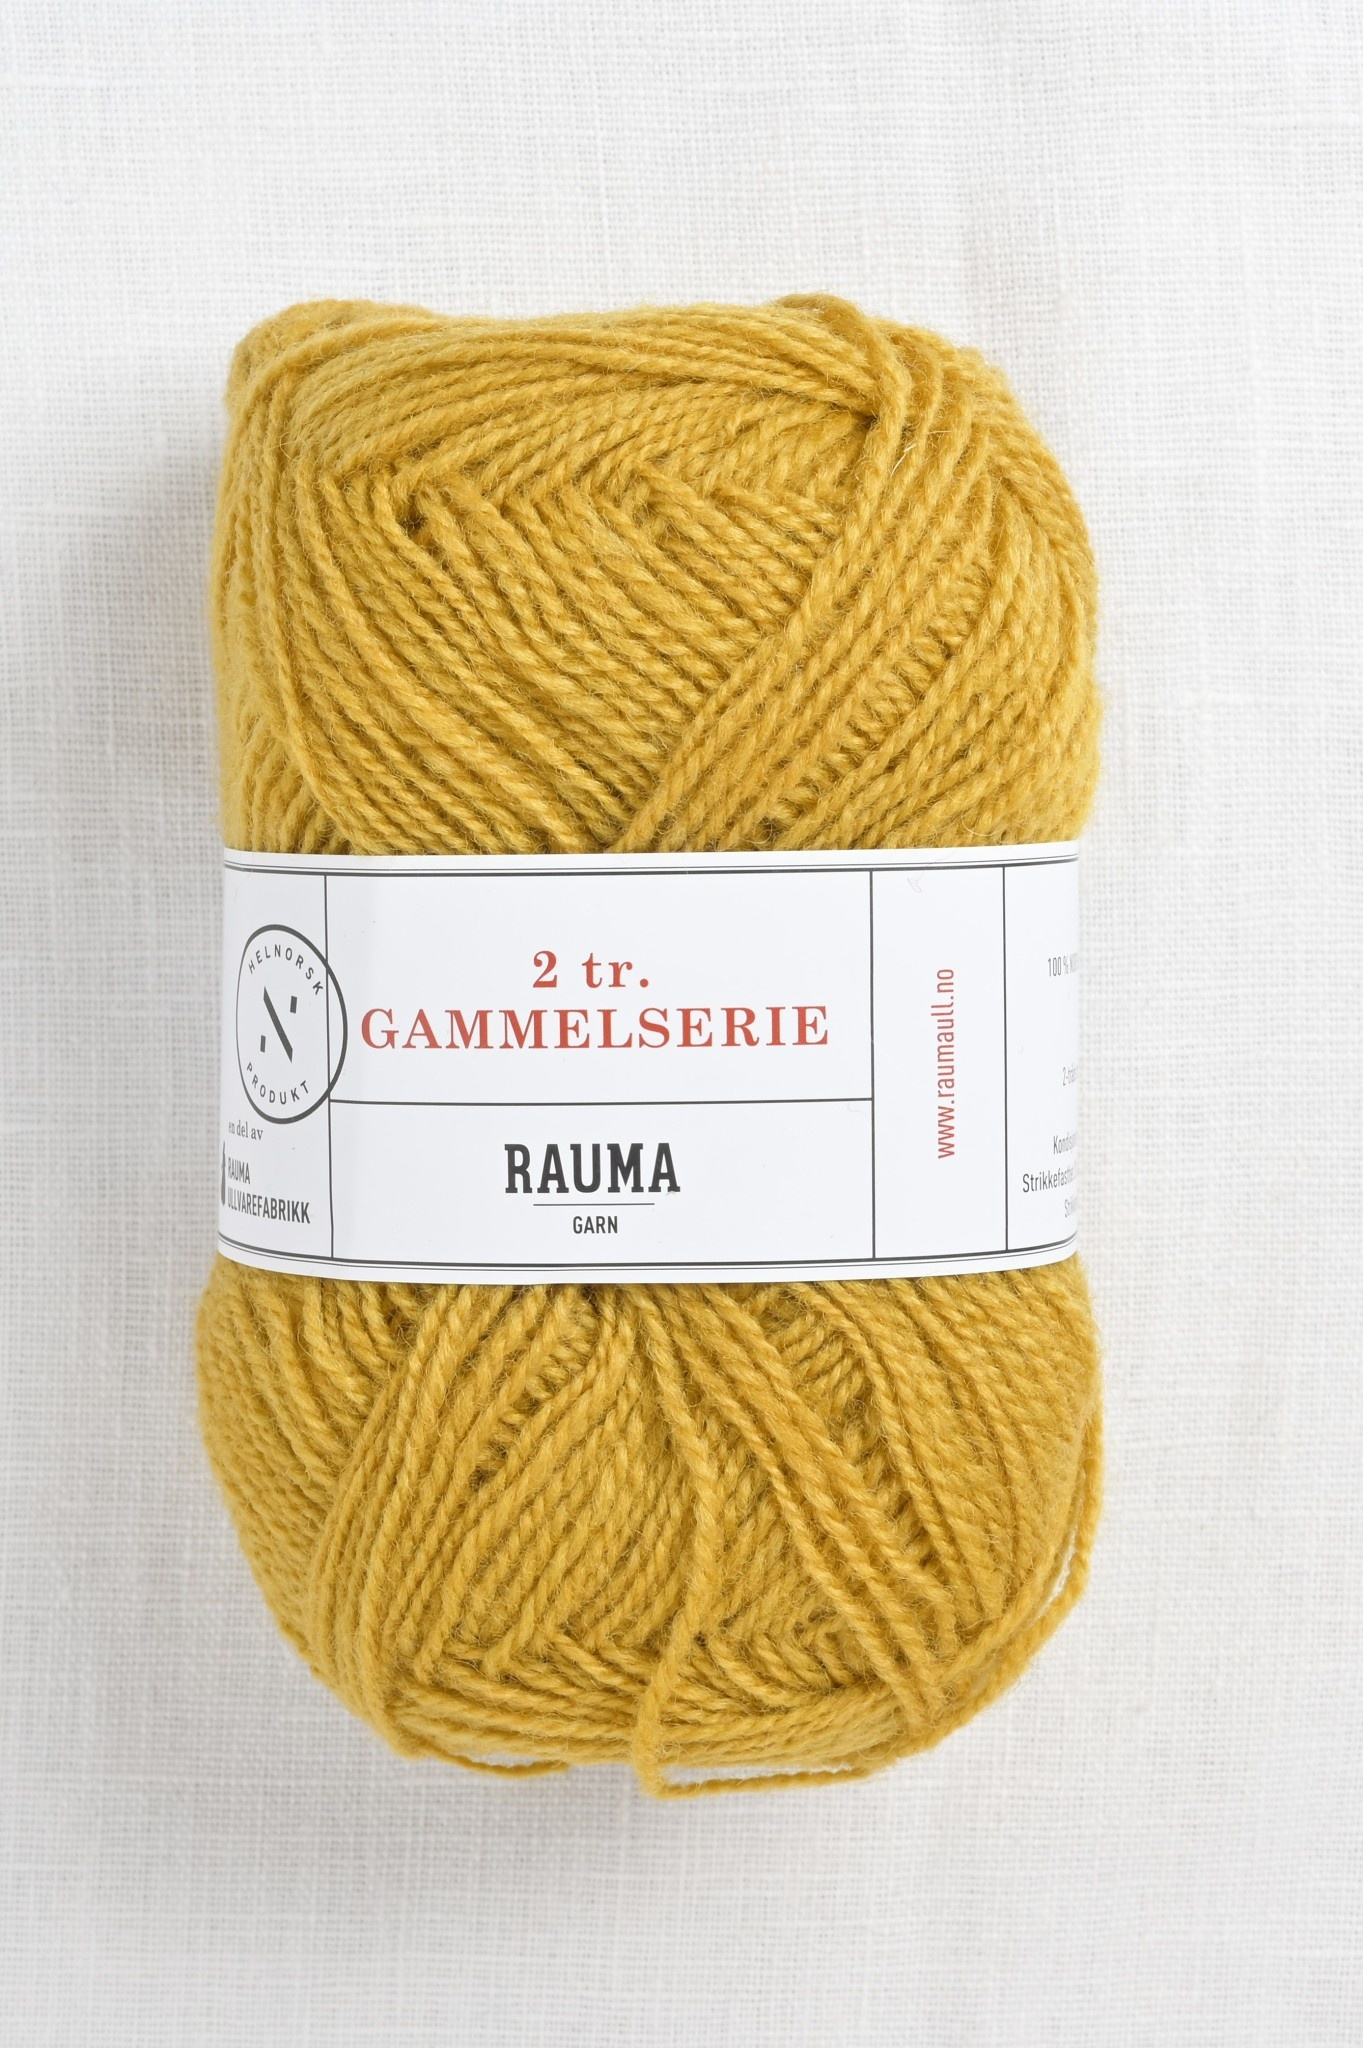 2 Ply Gammelserie in Light BLue by Rauma